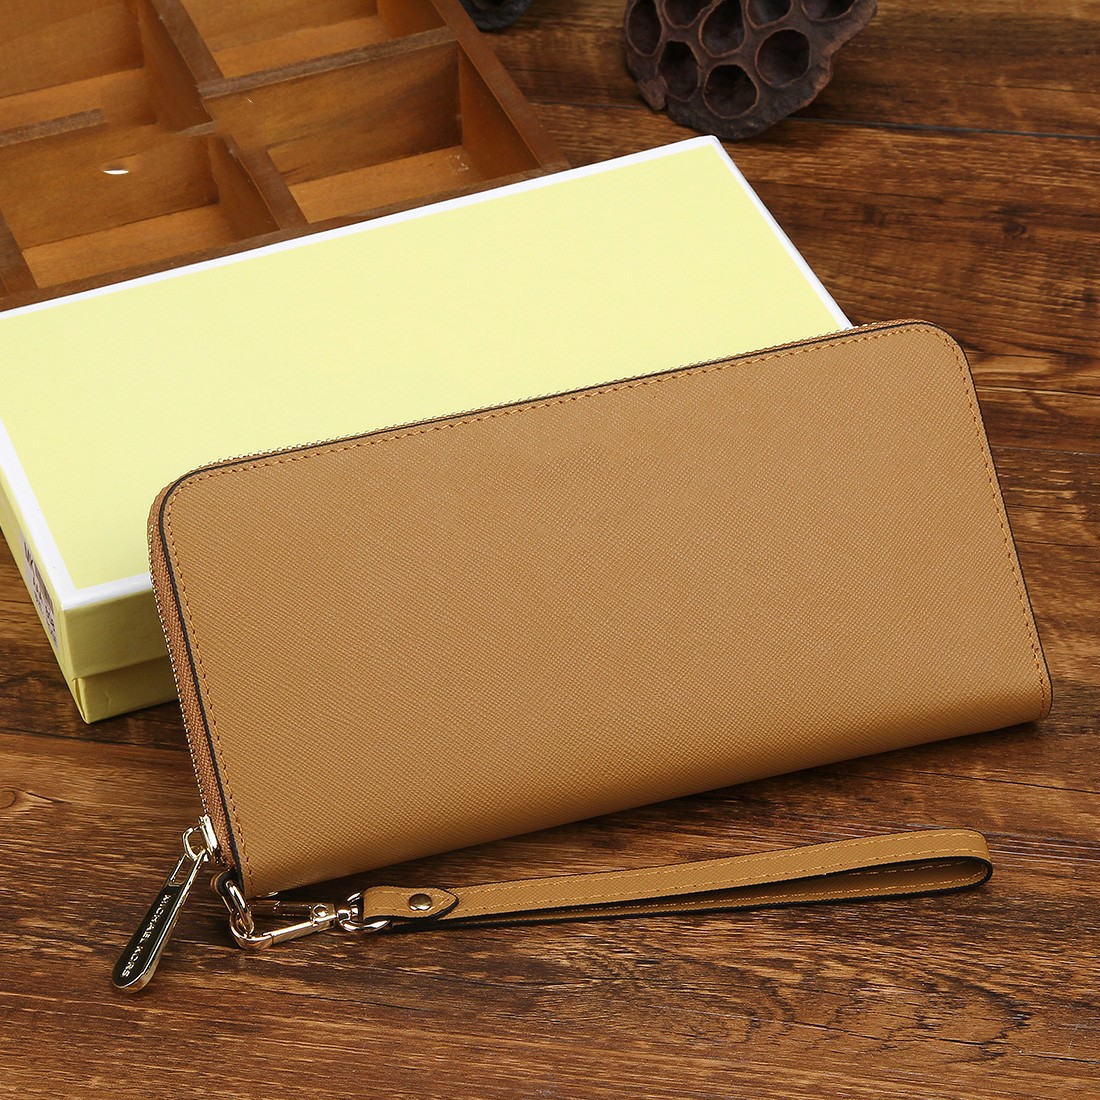 Women's Fashion Multicolor Leather Long Zip Clutch Wallet Large Capacity Long Card Holder Organizer Ladies Purse